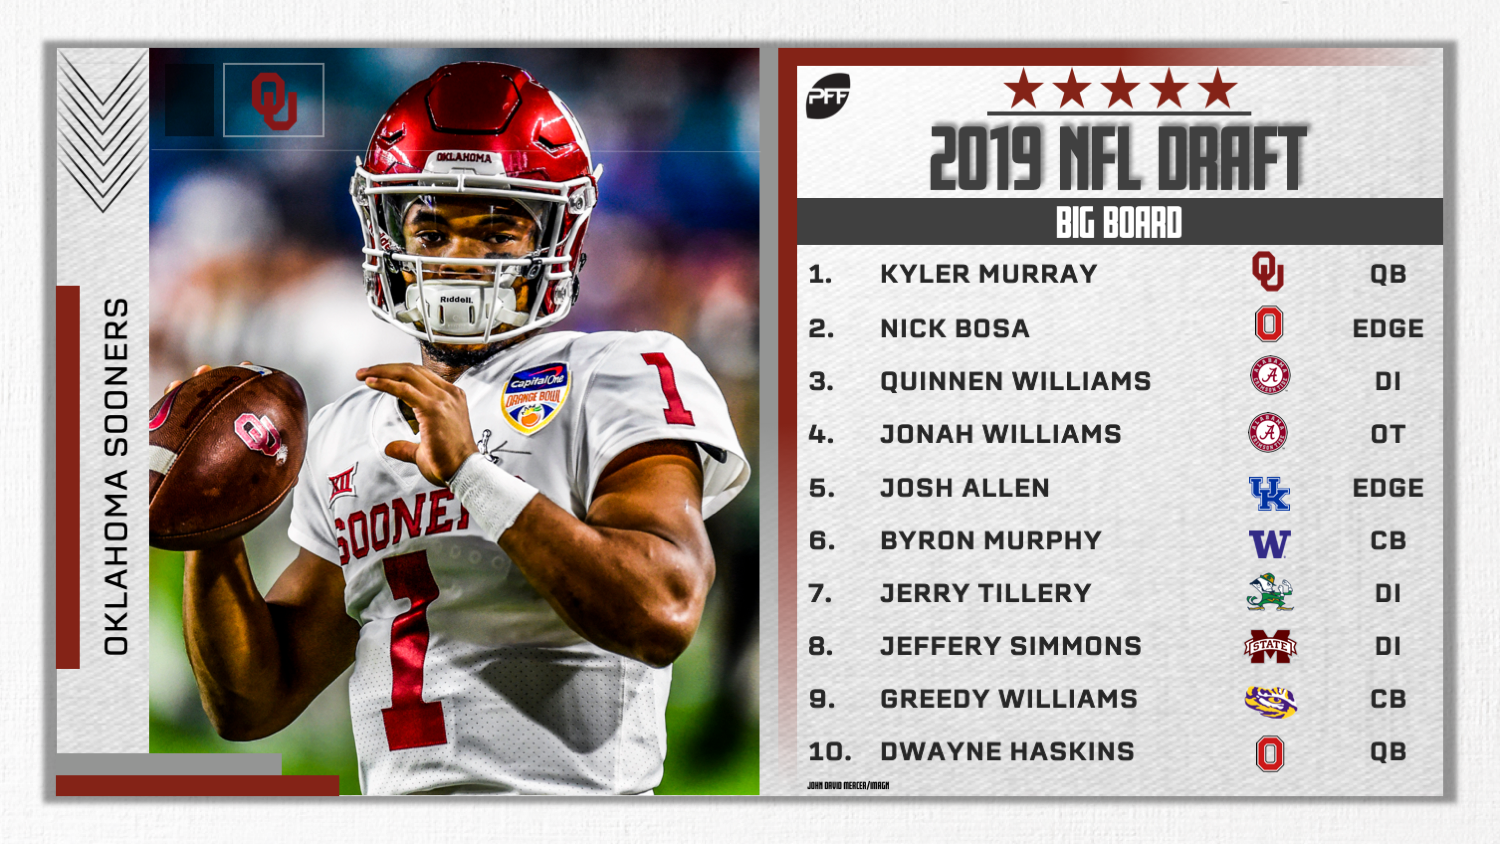 Pff S Top 50 Big Board For The 2019 Nfl Draft College Football